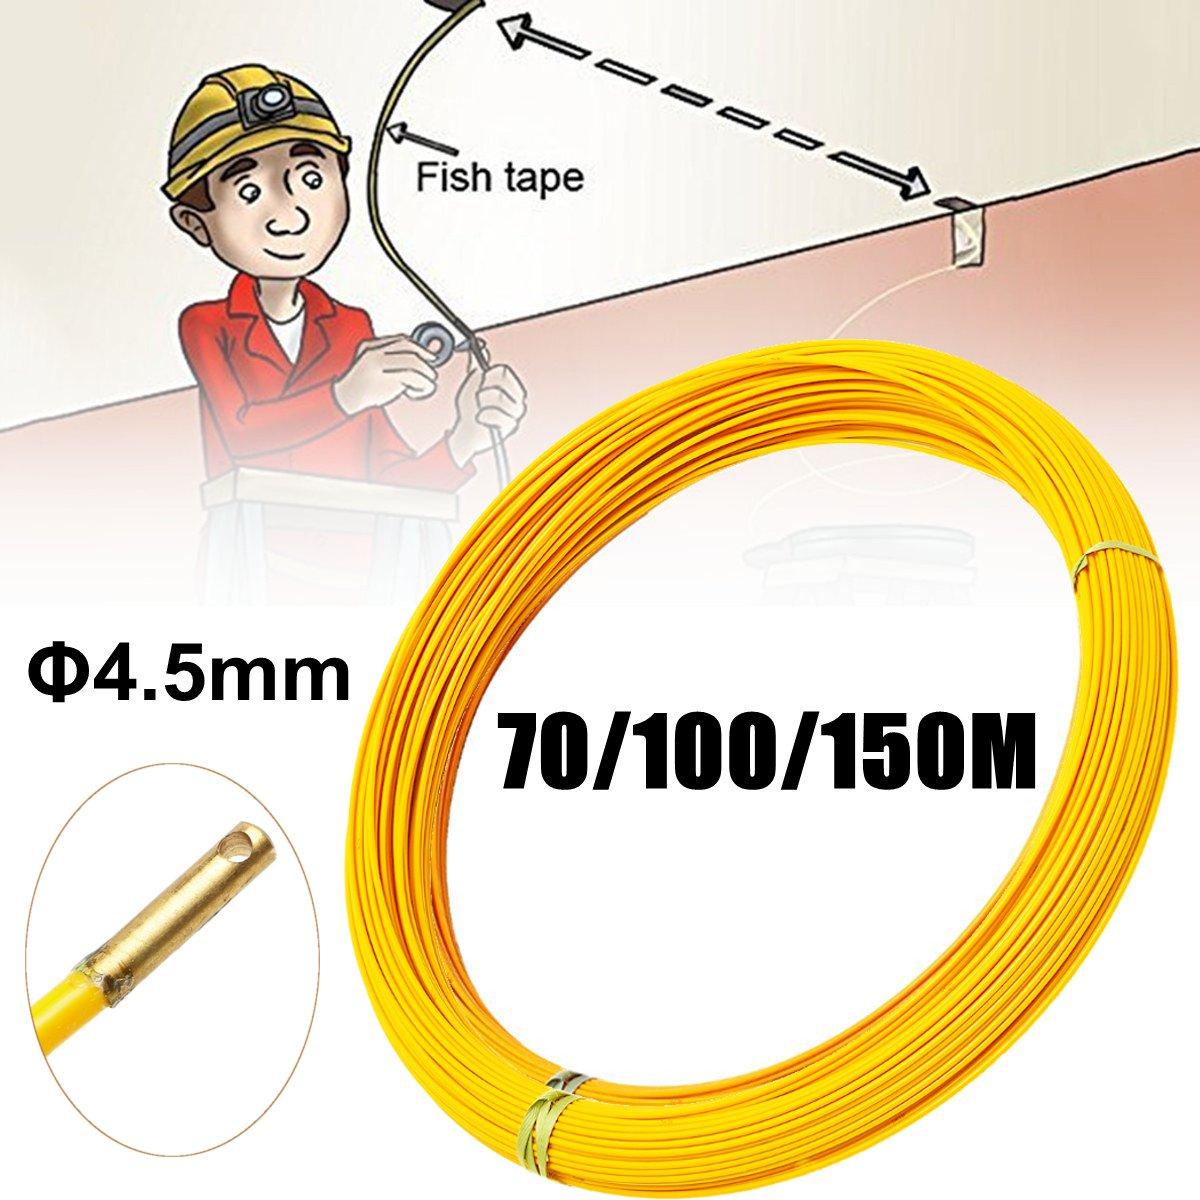 40m Fiberglass Fish Tape Reel Puller Conduit Ducting Rodder Pulling Wire Cable